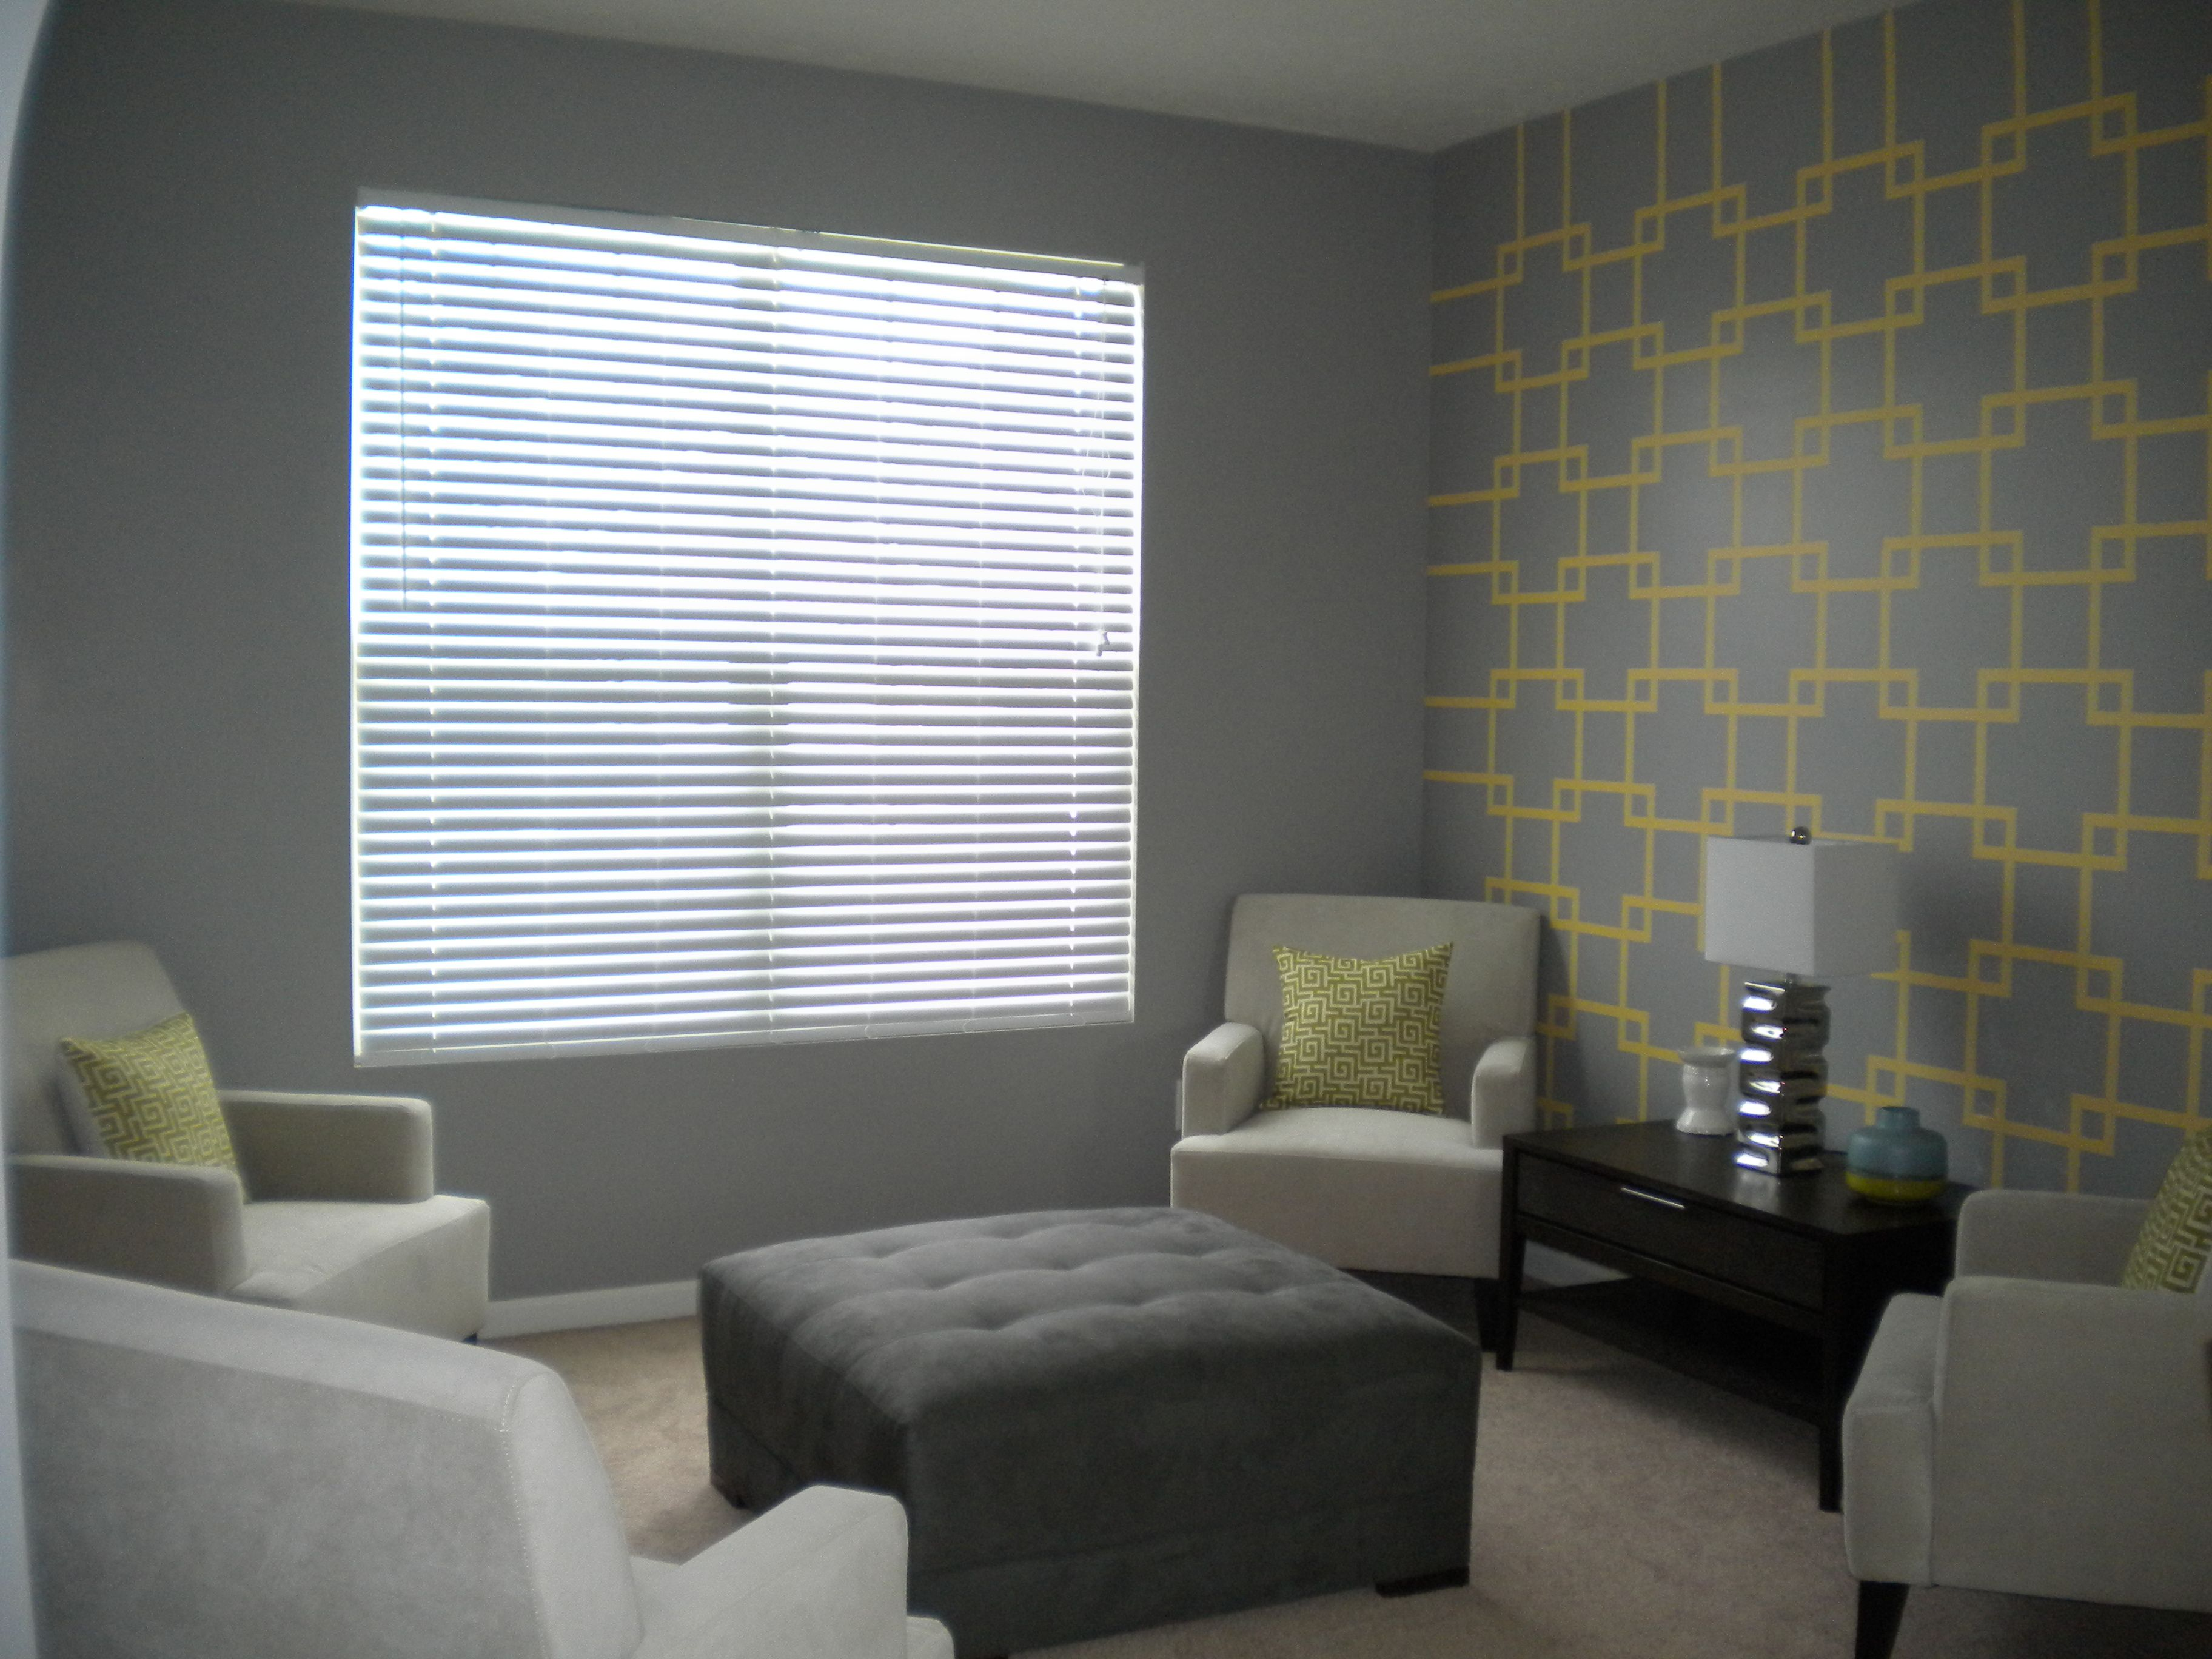 wall design using painters tape | ∙ Our House ∙ | Pinterest ...